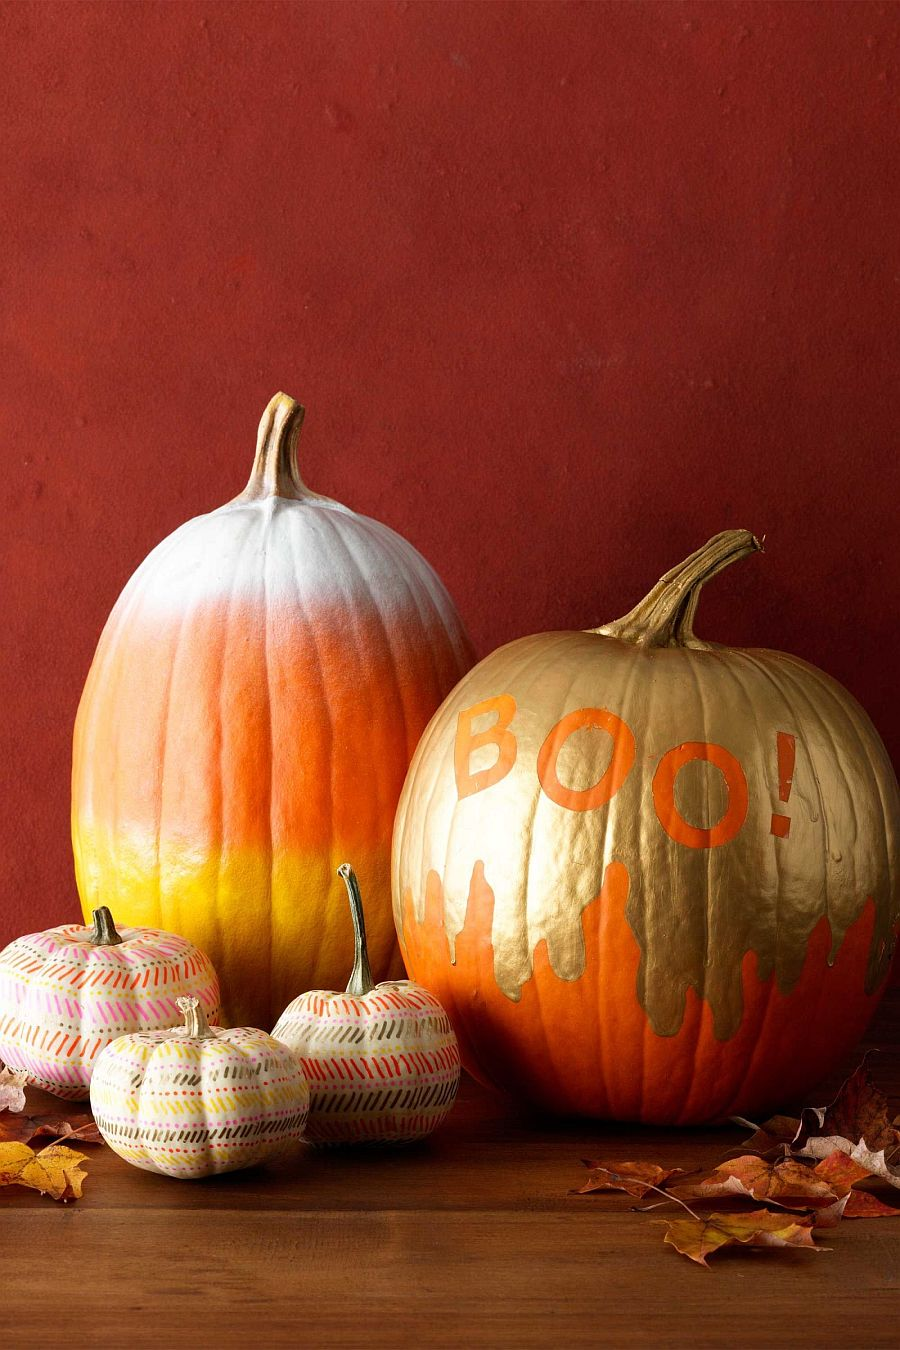 Add a touch of golden sparkle to the Halloween pumpkin with paint